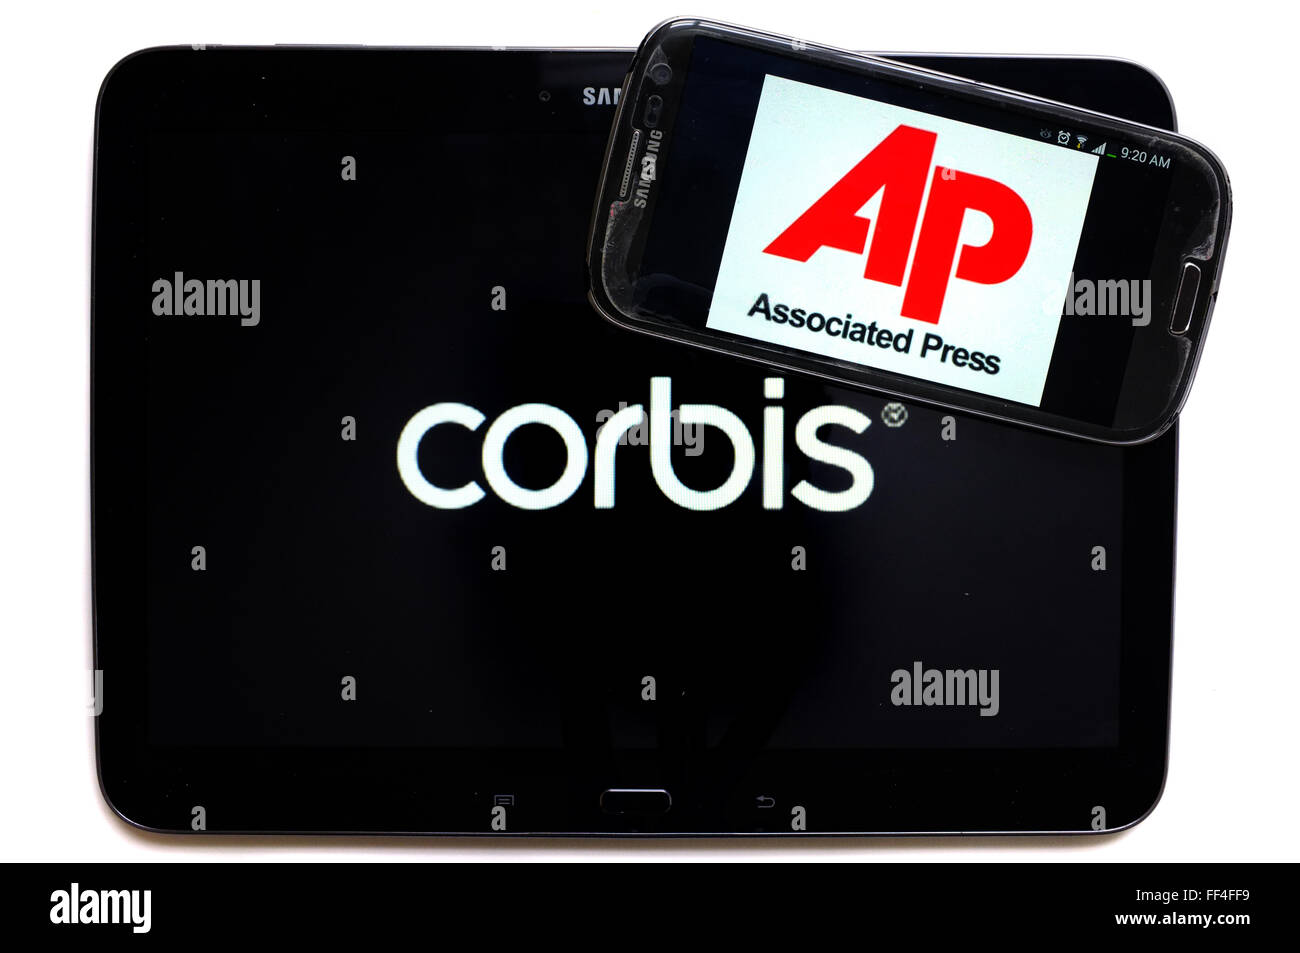 The Corbis logo on a smartphone and Associated Press on a tablet photographed against a white background. - Stock Image